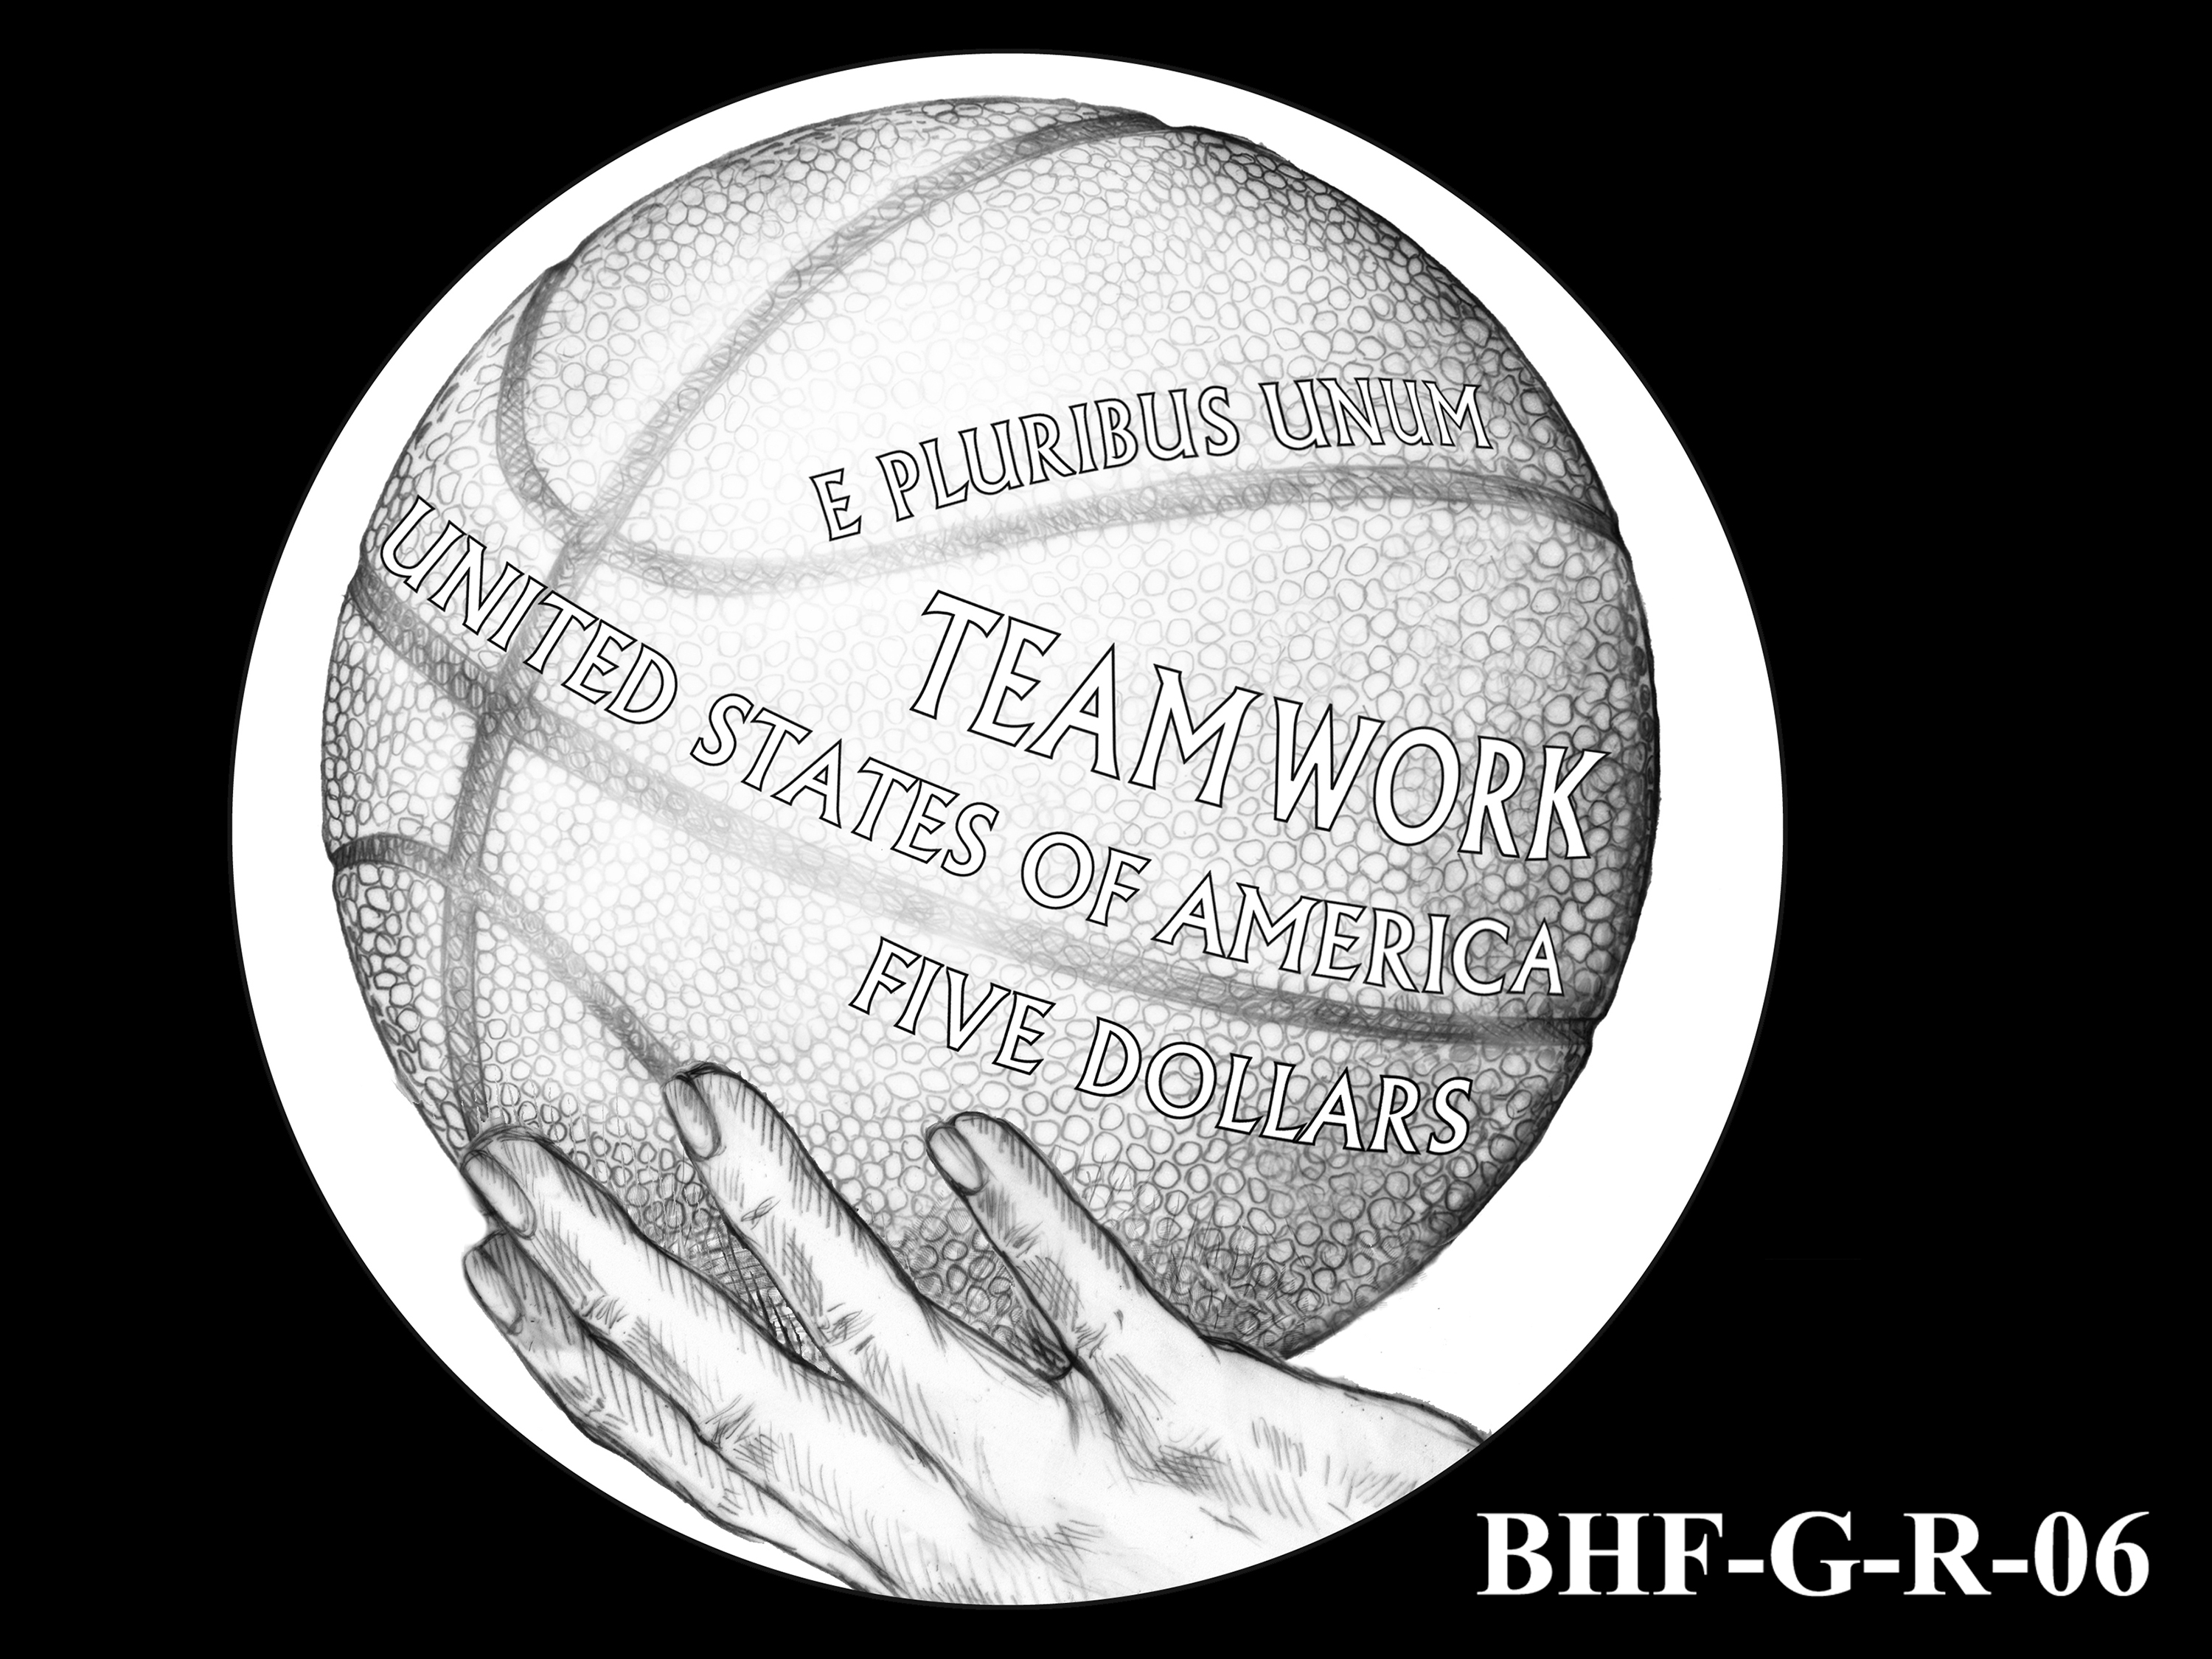 BHF-G-R-06 -- 2020 Basketball Hall of Fame Commemorative Coin Program - Gold Reverse